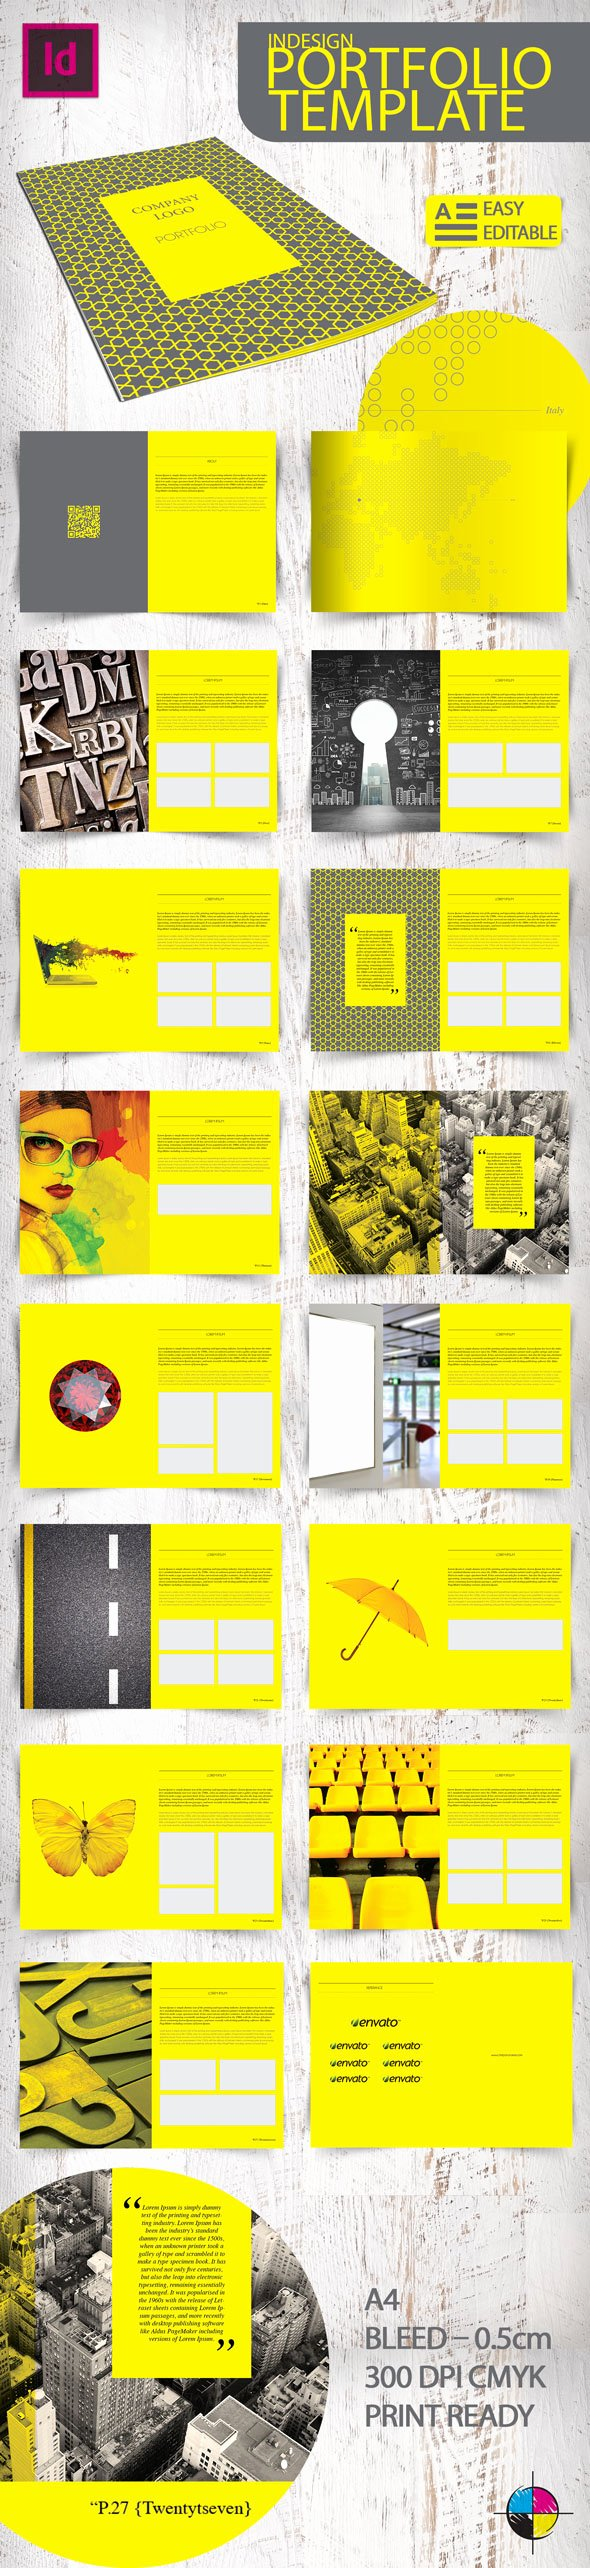 Indesign Portfolio Template Free Elegant Indesign Portfolio Template On Behance